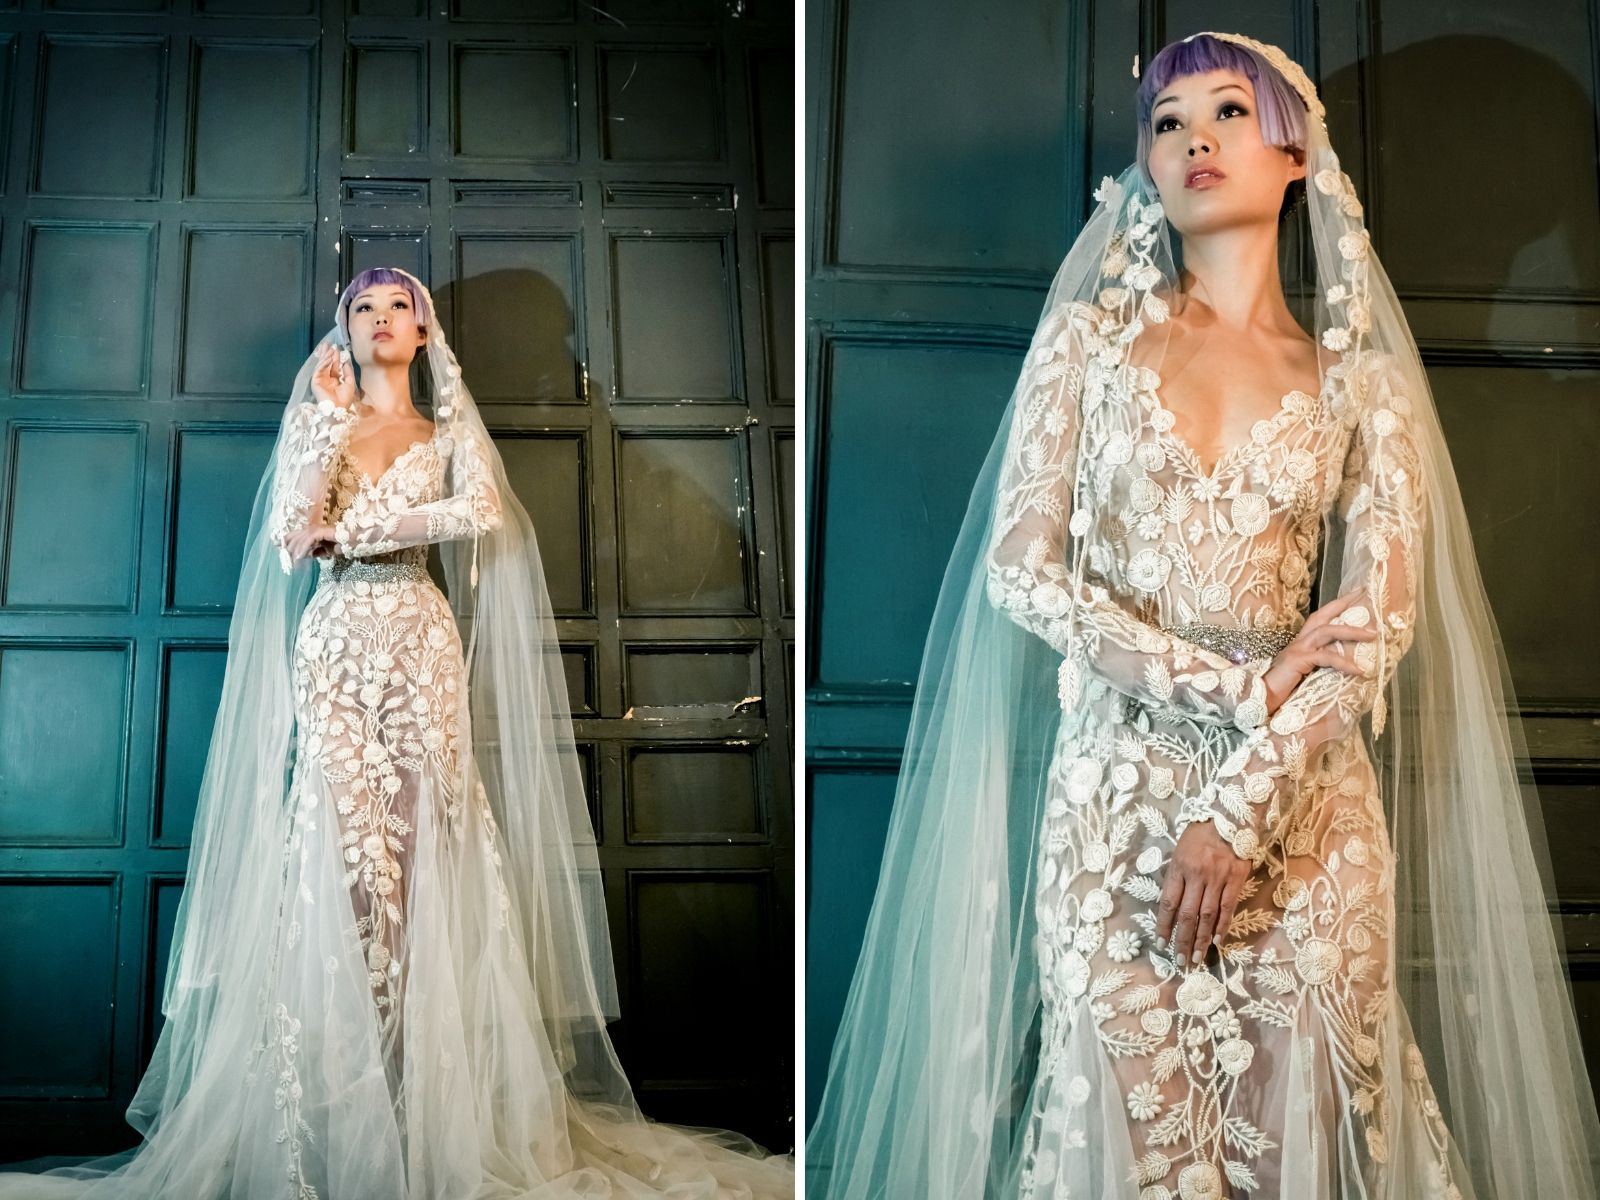 Elaborate sleeved summer wedding dresses by Bowen Dryden